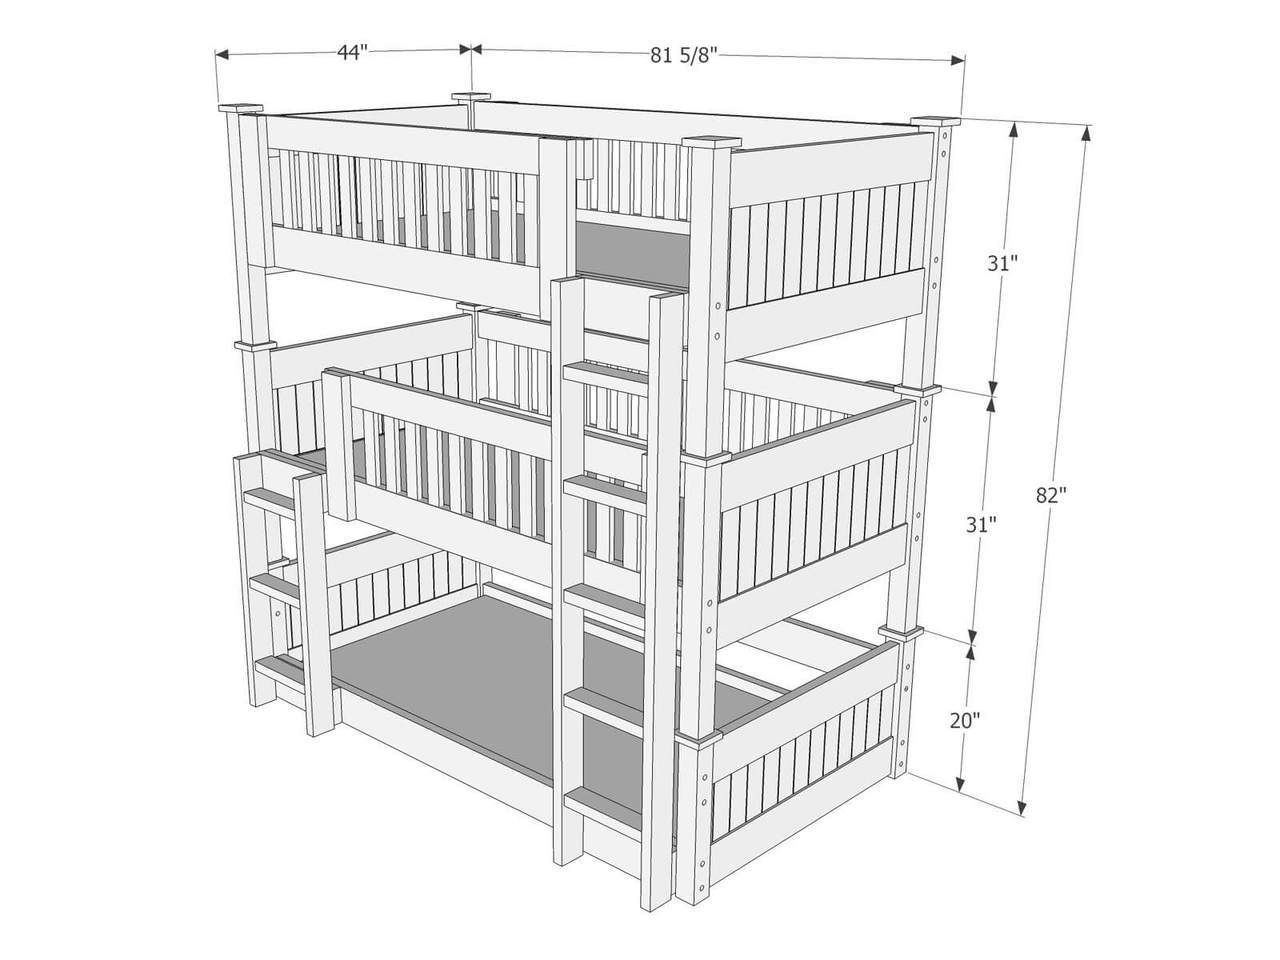 Dimensions of Triple Bunk Bed B64 | For the Home in 2019